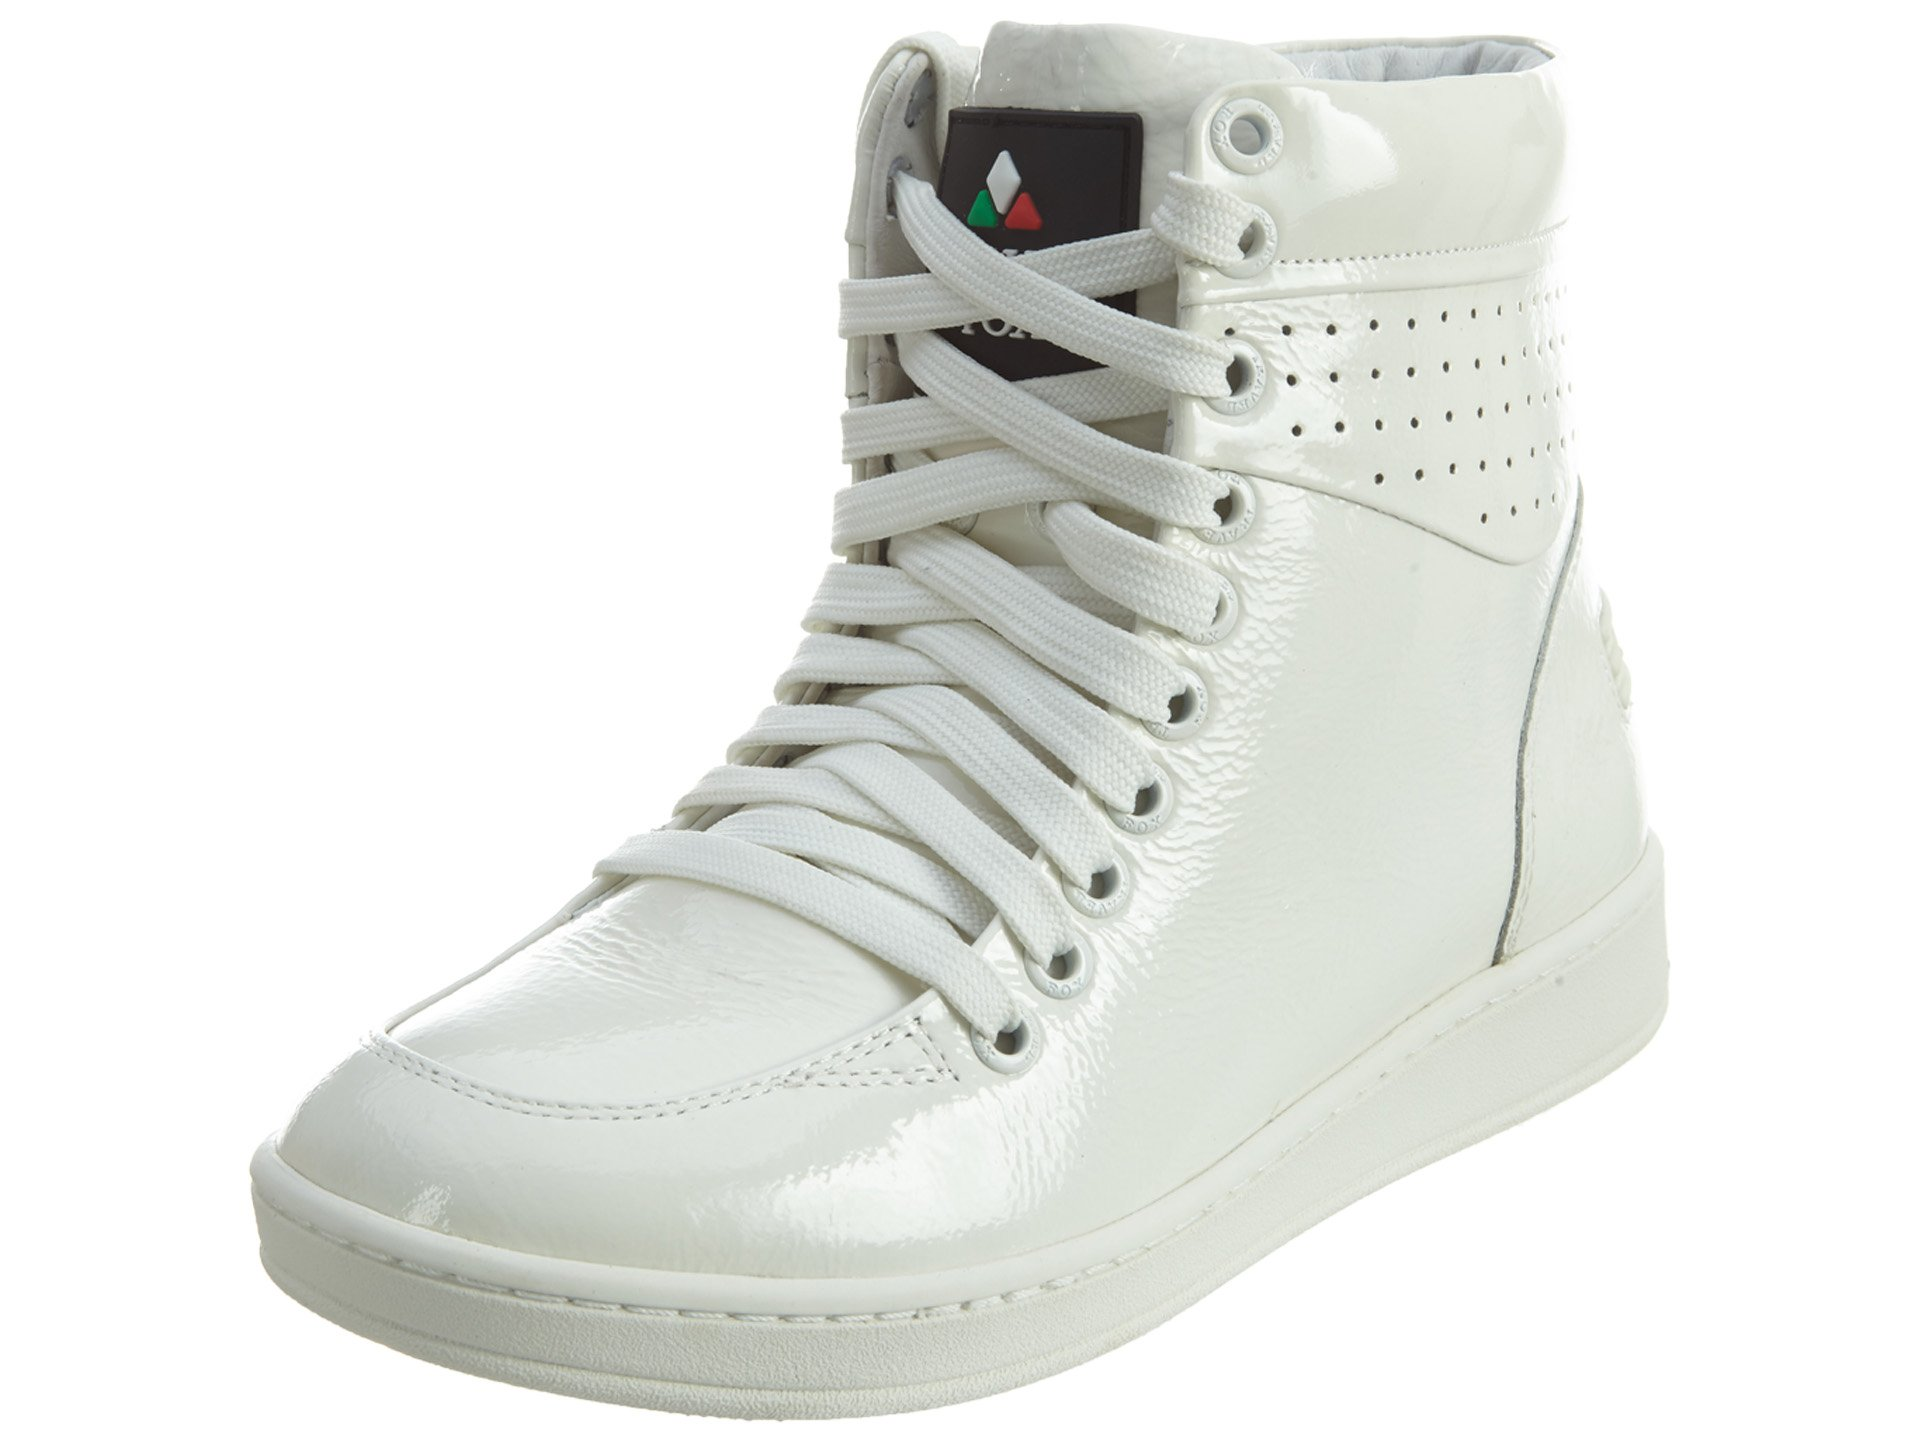 Travel Fox 900 Series Nappa Leather High Top Womens Style: 916301-407 Size: 37